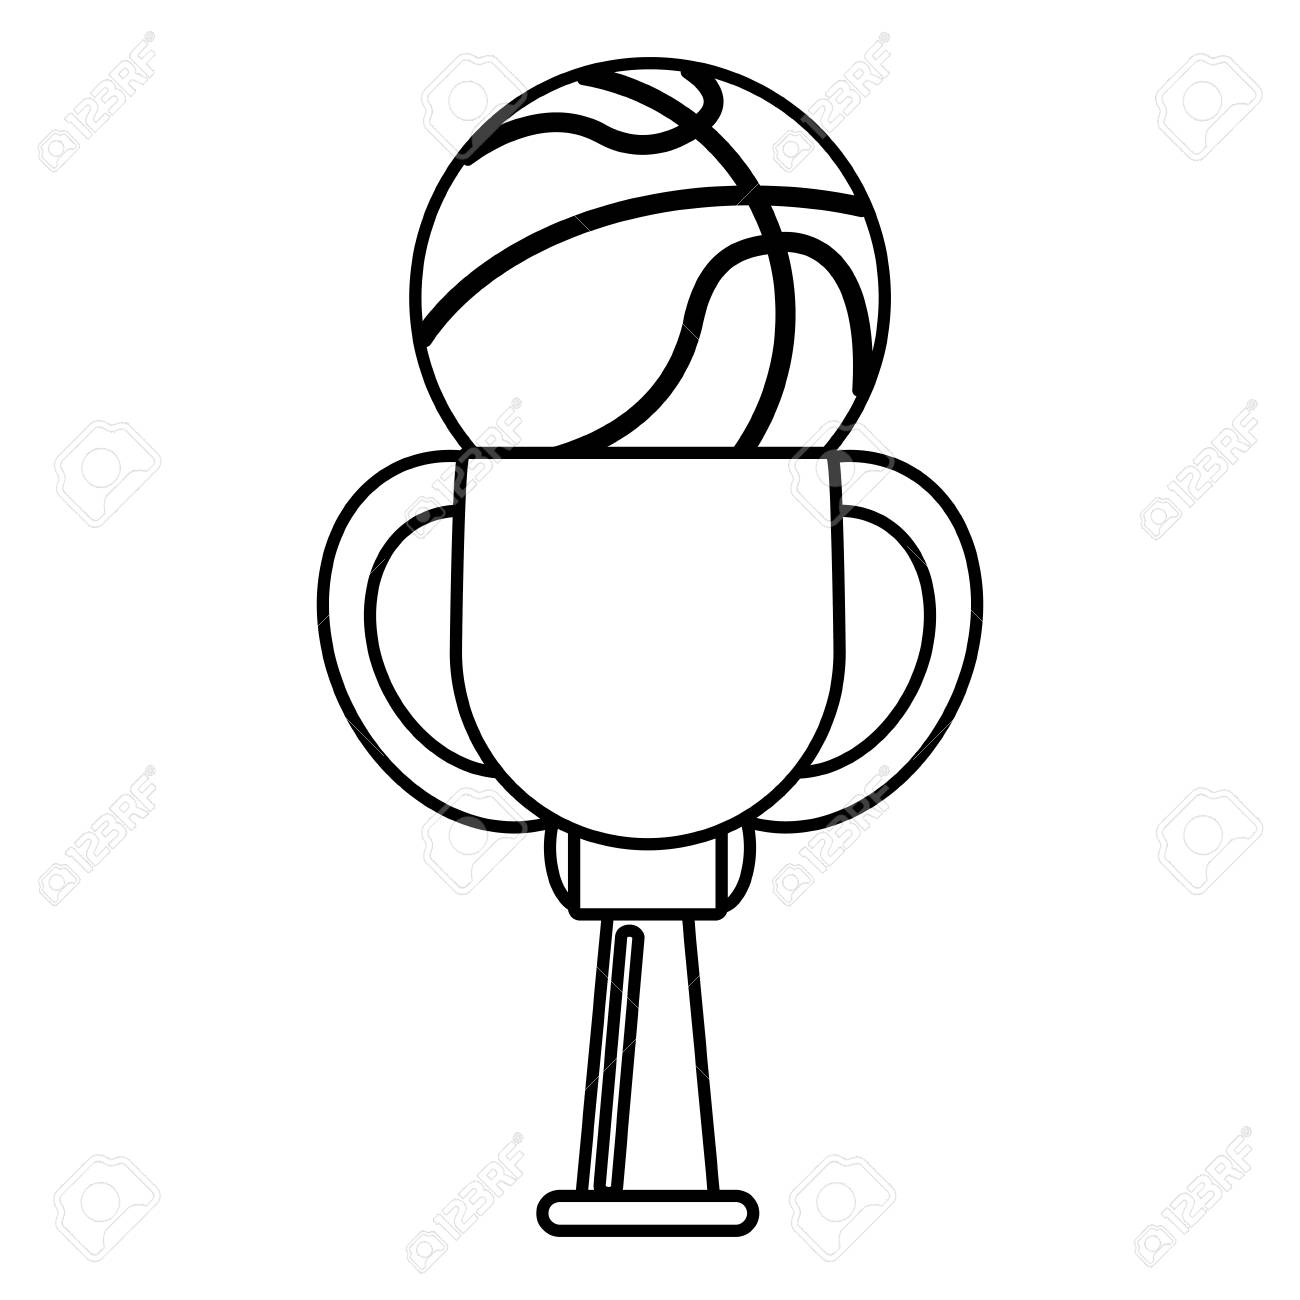 1300x1300 Cute Trophy Ball Basketball Winner Outline Vector Illustration